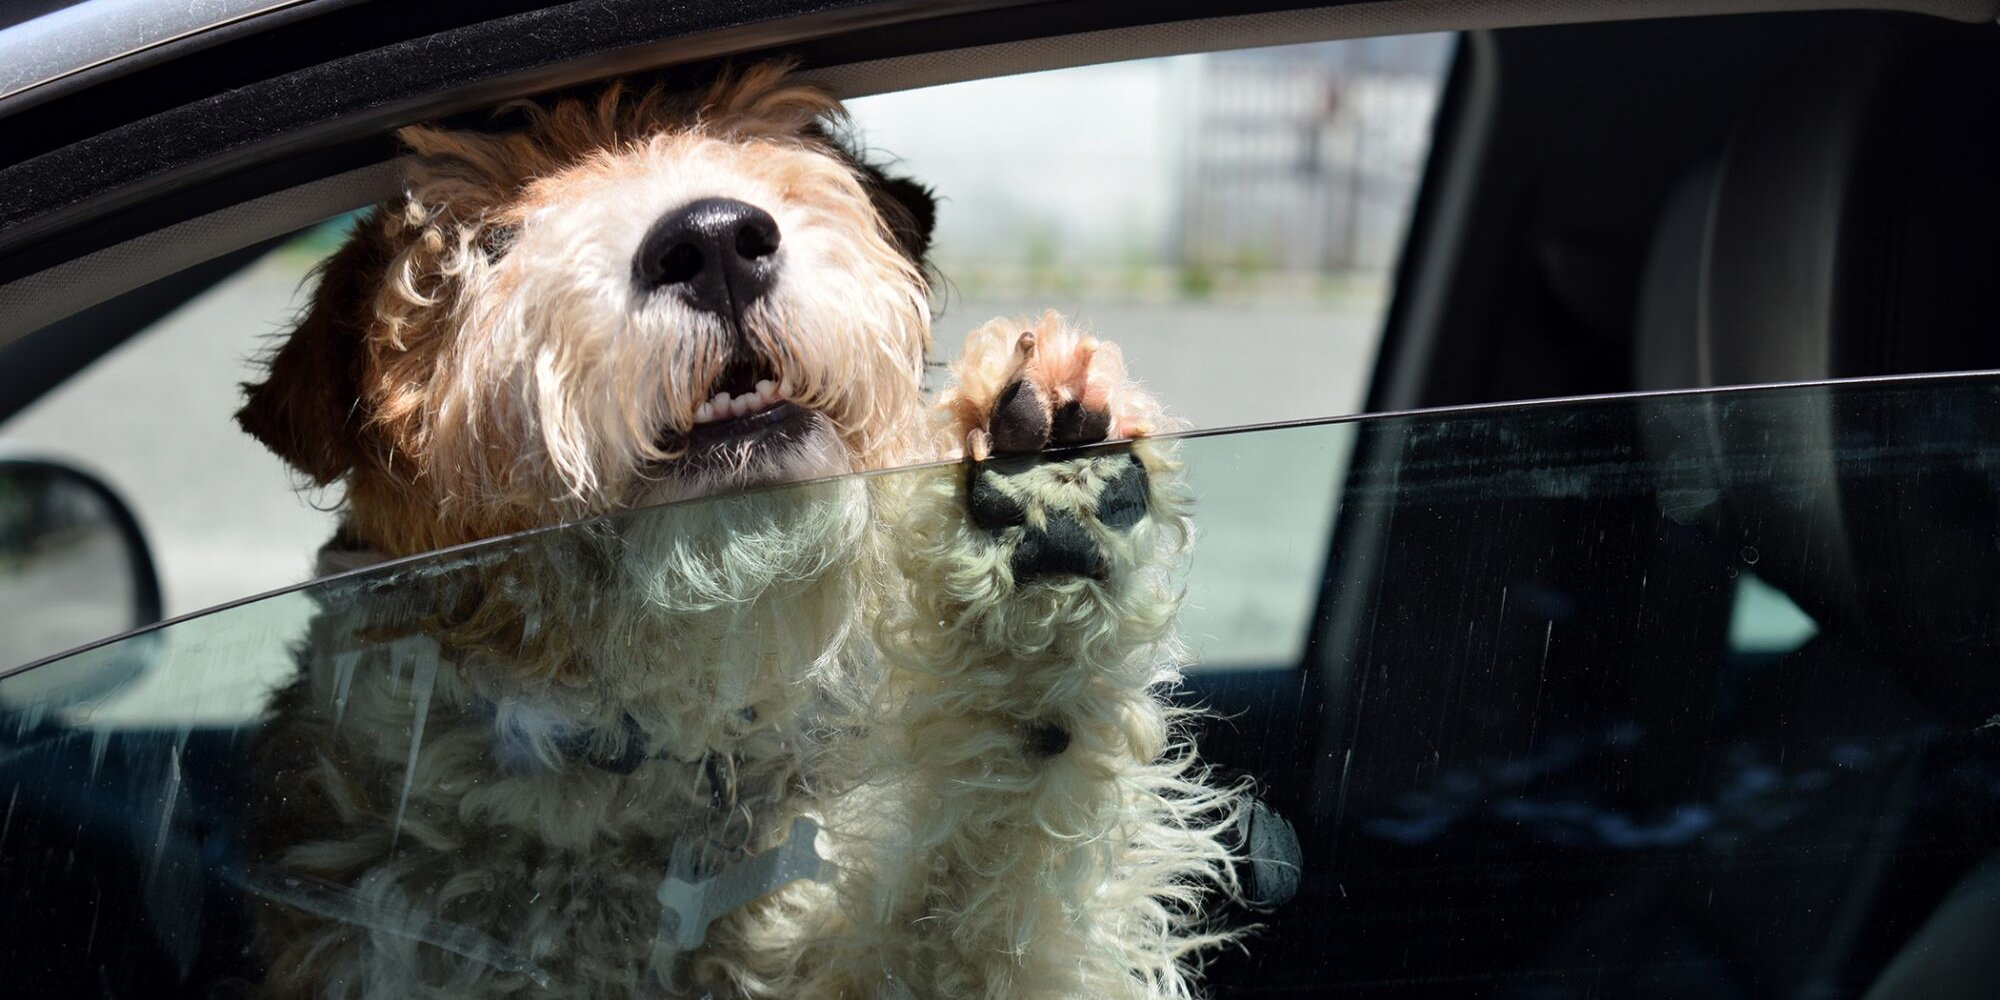 Exactly What to Do If You See a Dog In a Hot Car (And Why)